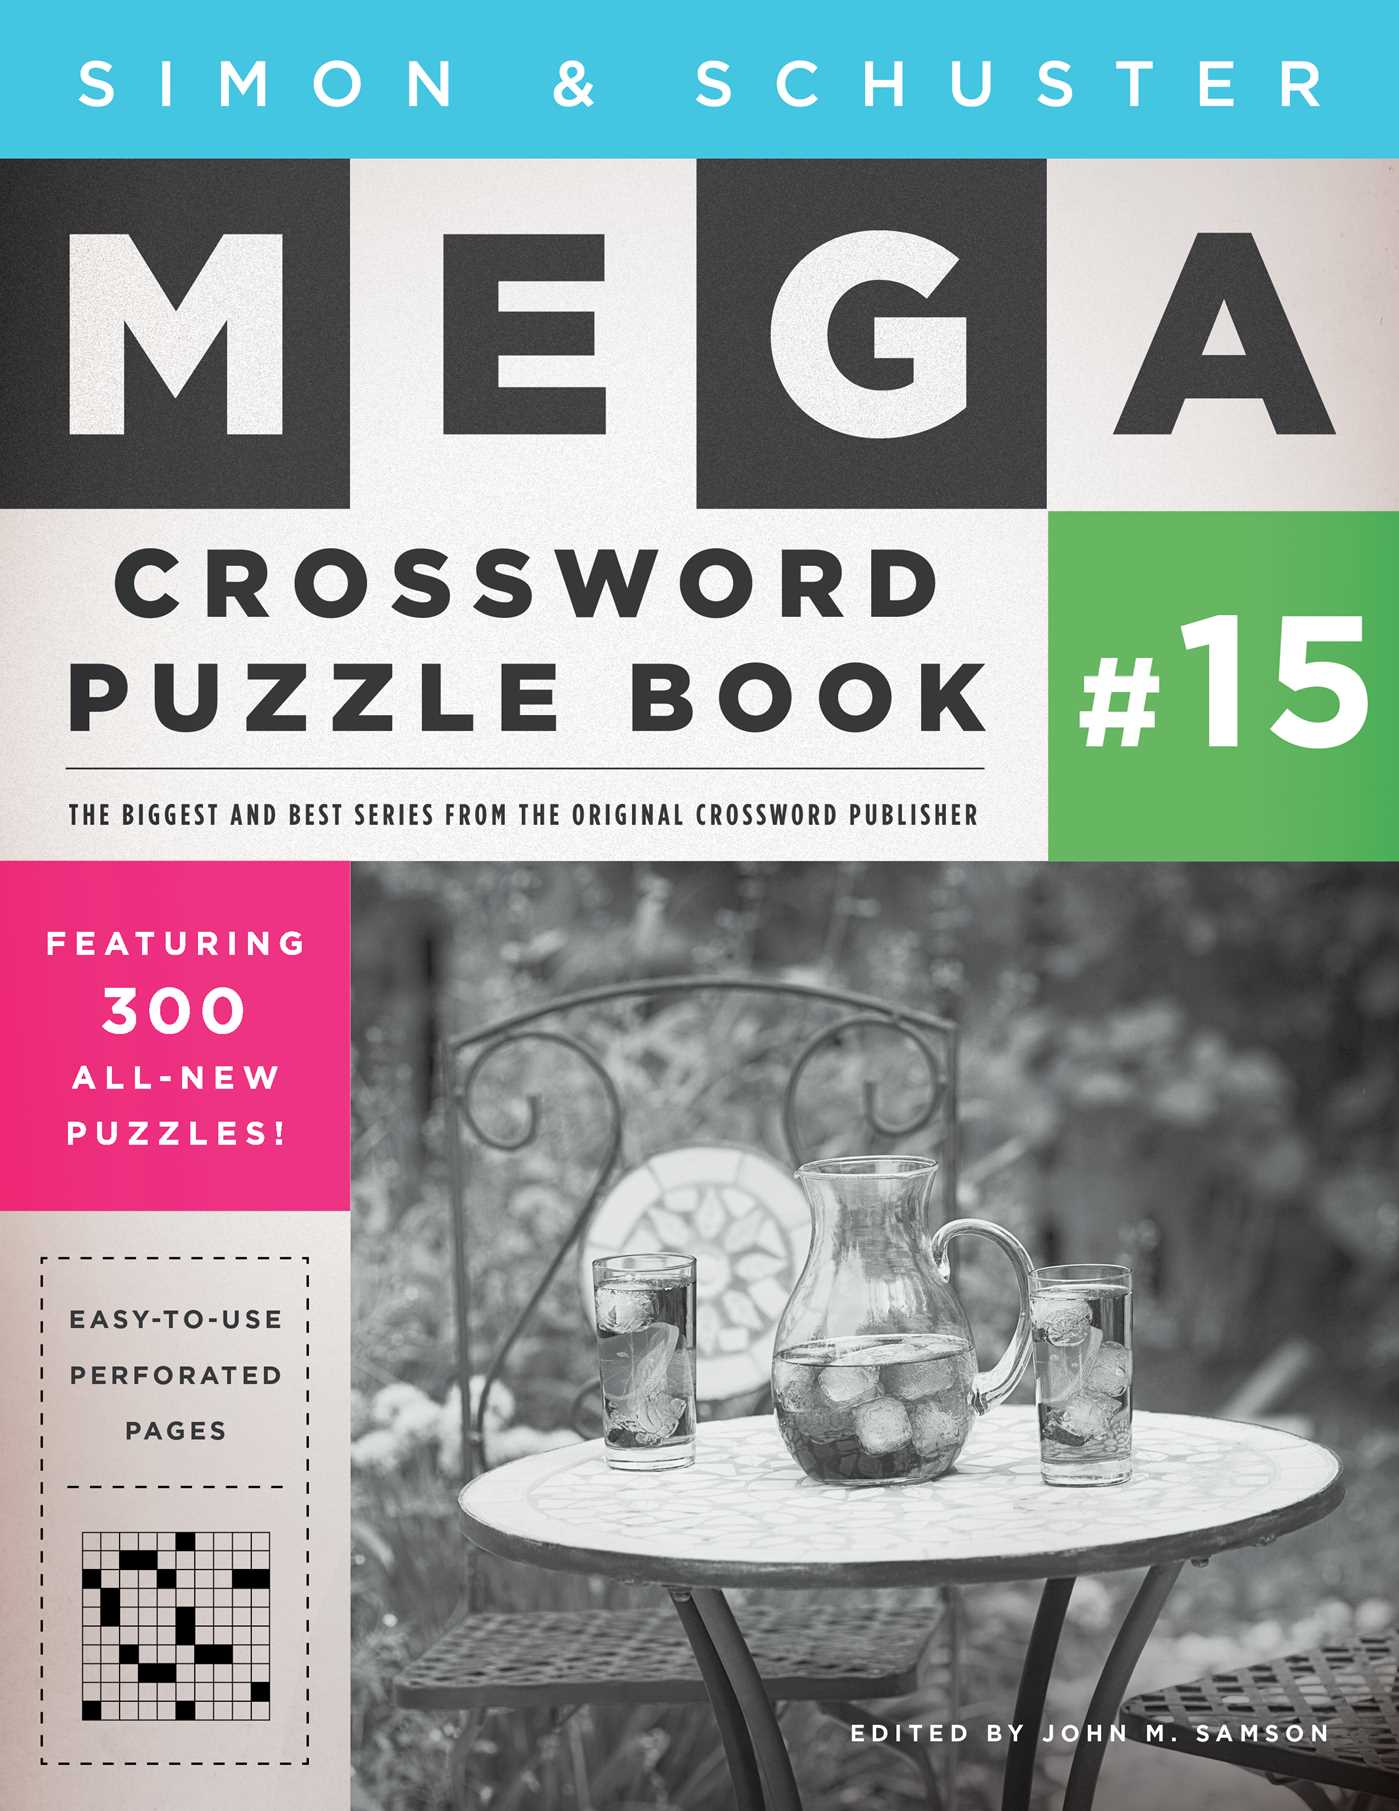 Simon schuster mega crossword puzzle book 15 9781501115868 hr